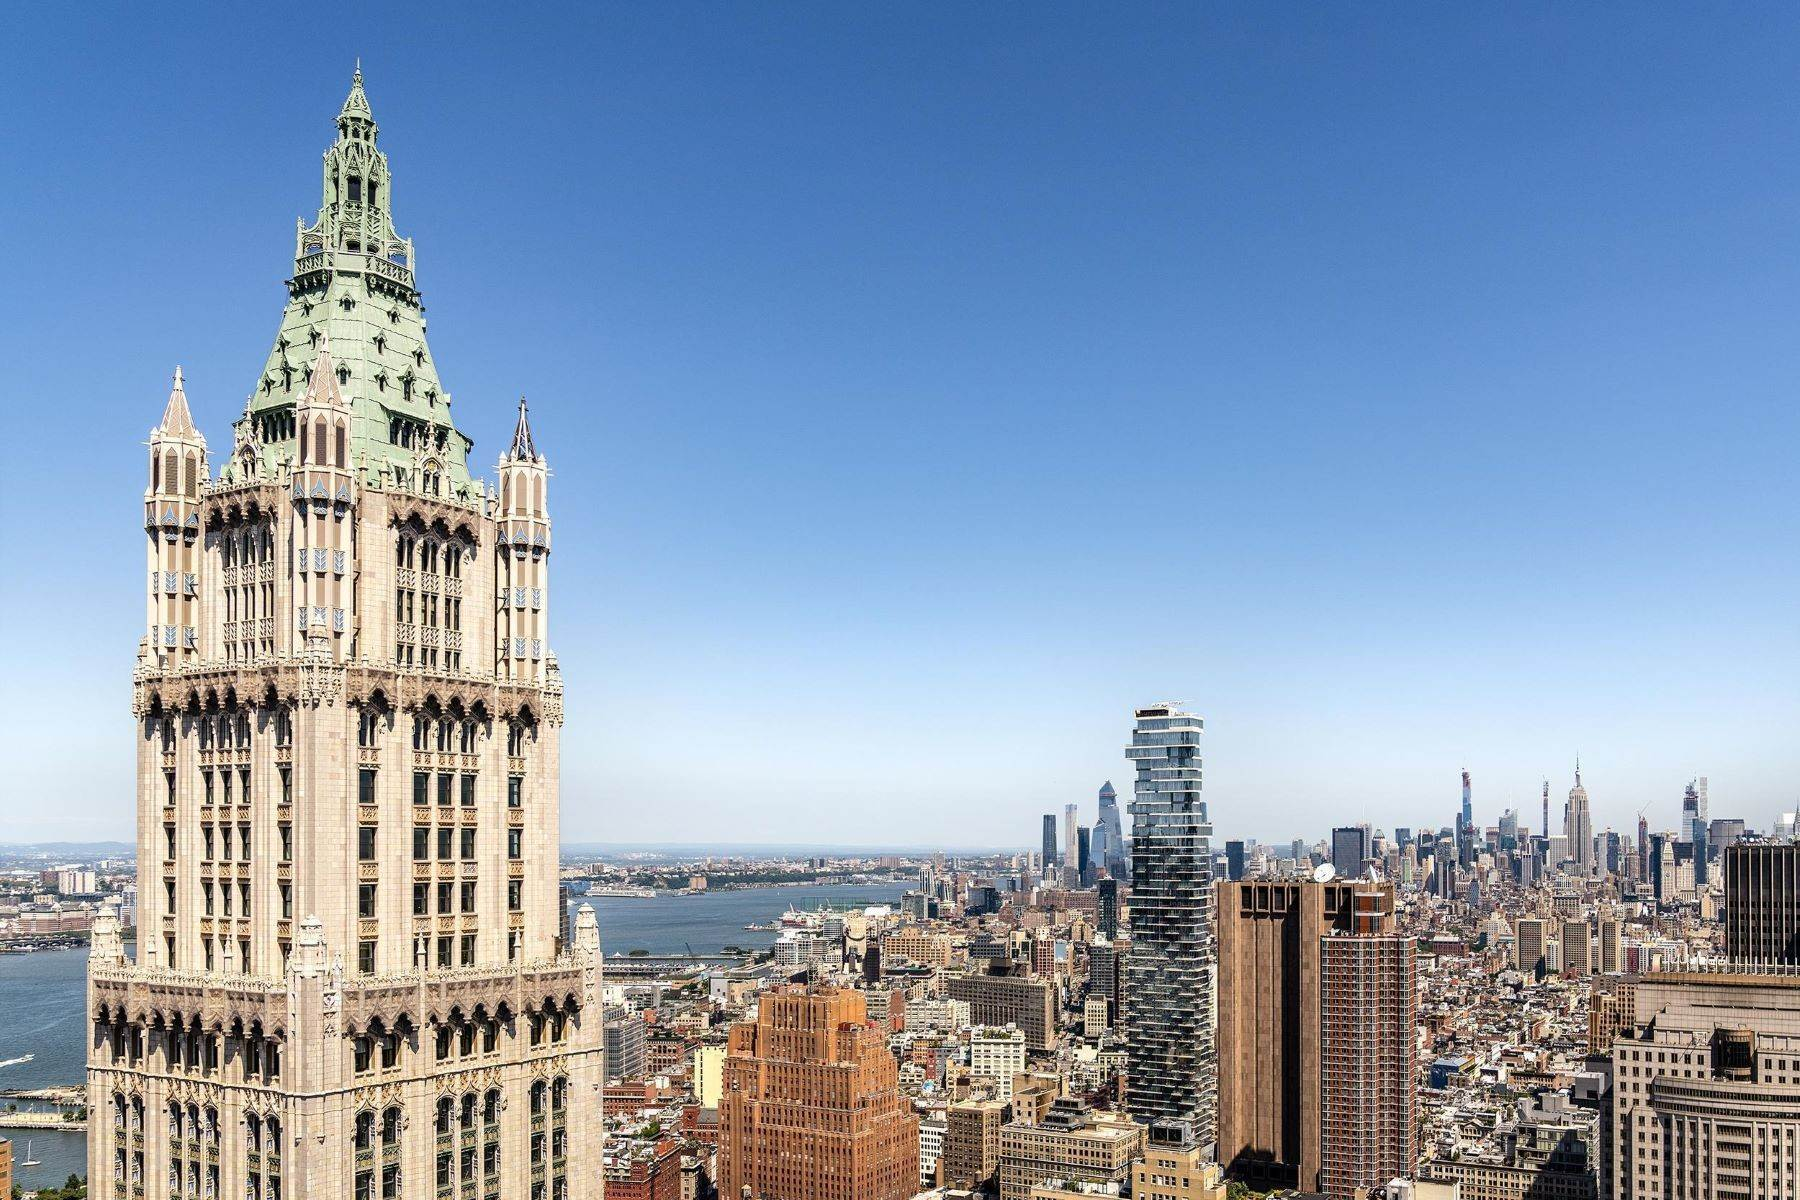 Property -de The Pinnacle Penthouse 2 Park Place, Pinnacle Penthouse, New York, New York 10007 Amerika Birleşik Devletleri